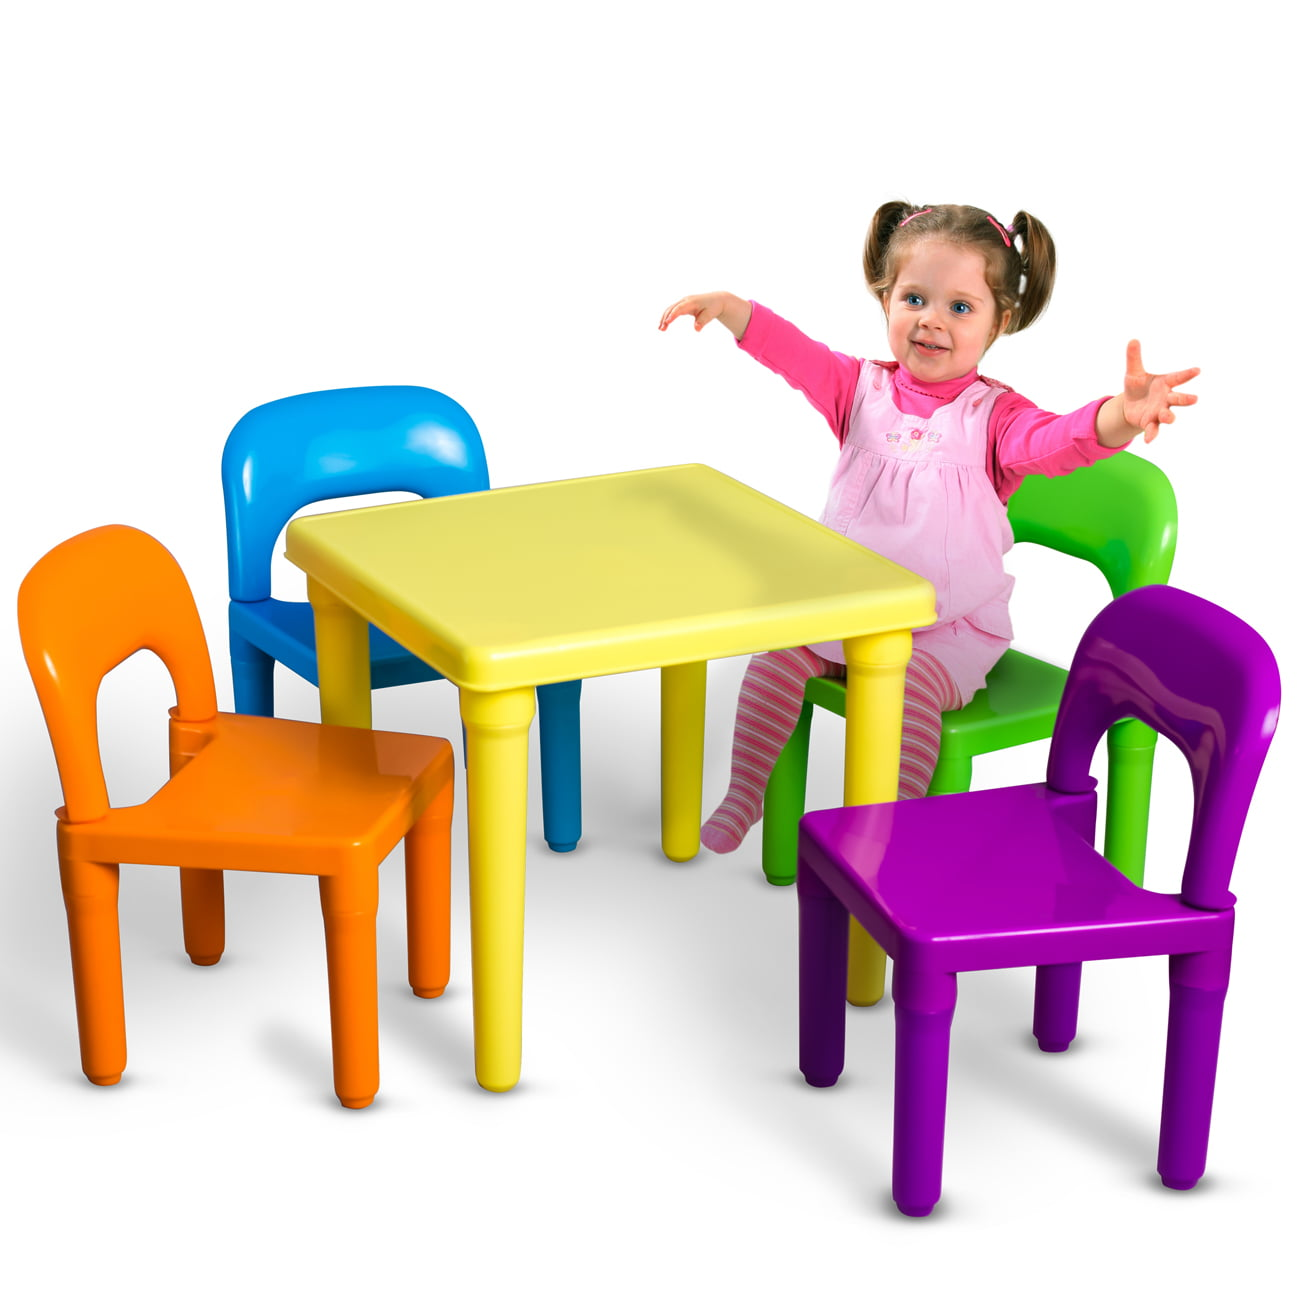 OxGord Kids Table And Chairs Play Set For Toddler Child Toy Activity Furniture Indoor Or Outdoor - Walmart.com  sc 1 st  Walmart & OxGord Kids Table And Chairs Play Set For Toddler Child Toy Activity ...